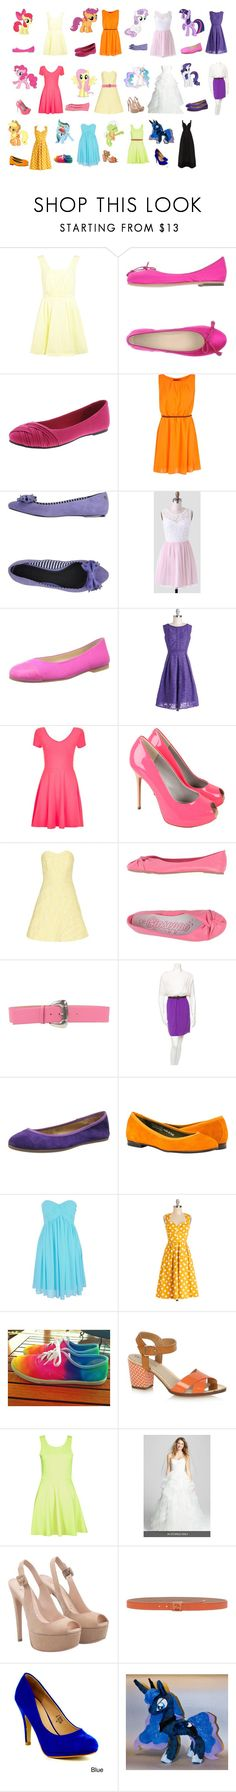 """""""Mlp Dresses"""" by avellines ❤ liked on Polyvore featuring My Little Pony, Miss Selfridge, Boohoo, Diesel, French Sole FS/NY, Pink Martini, Bourne, Alice + Olivia, Gioseppo and Giordano Frangipani"""